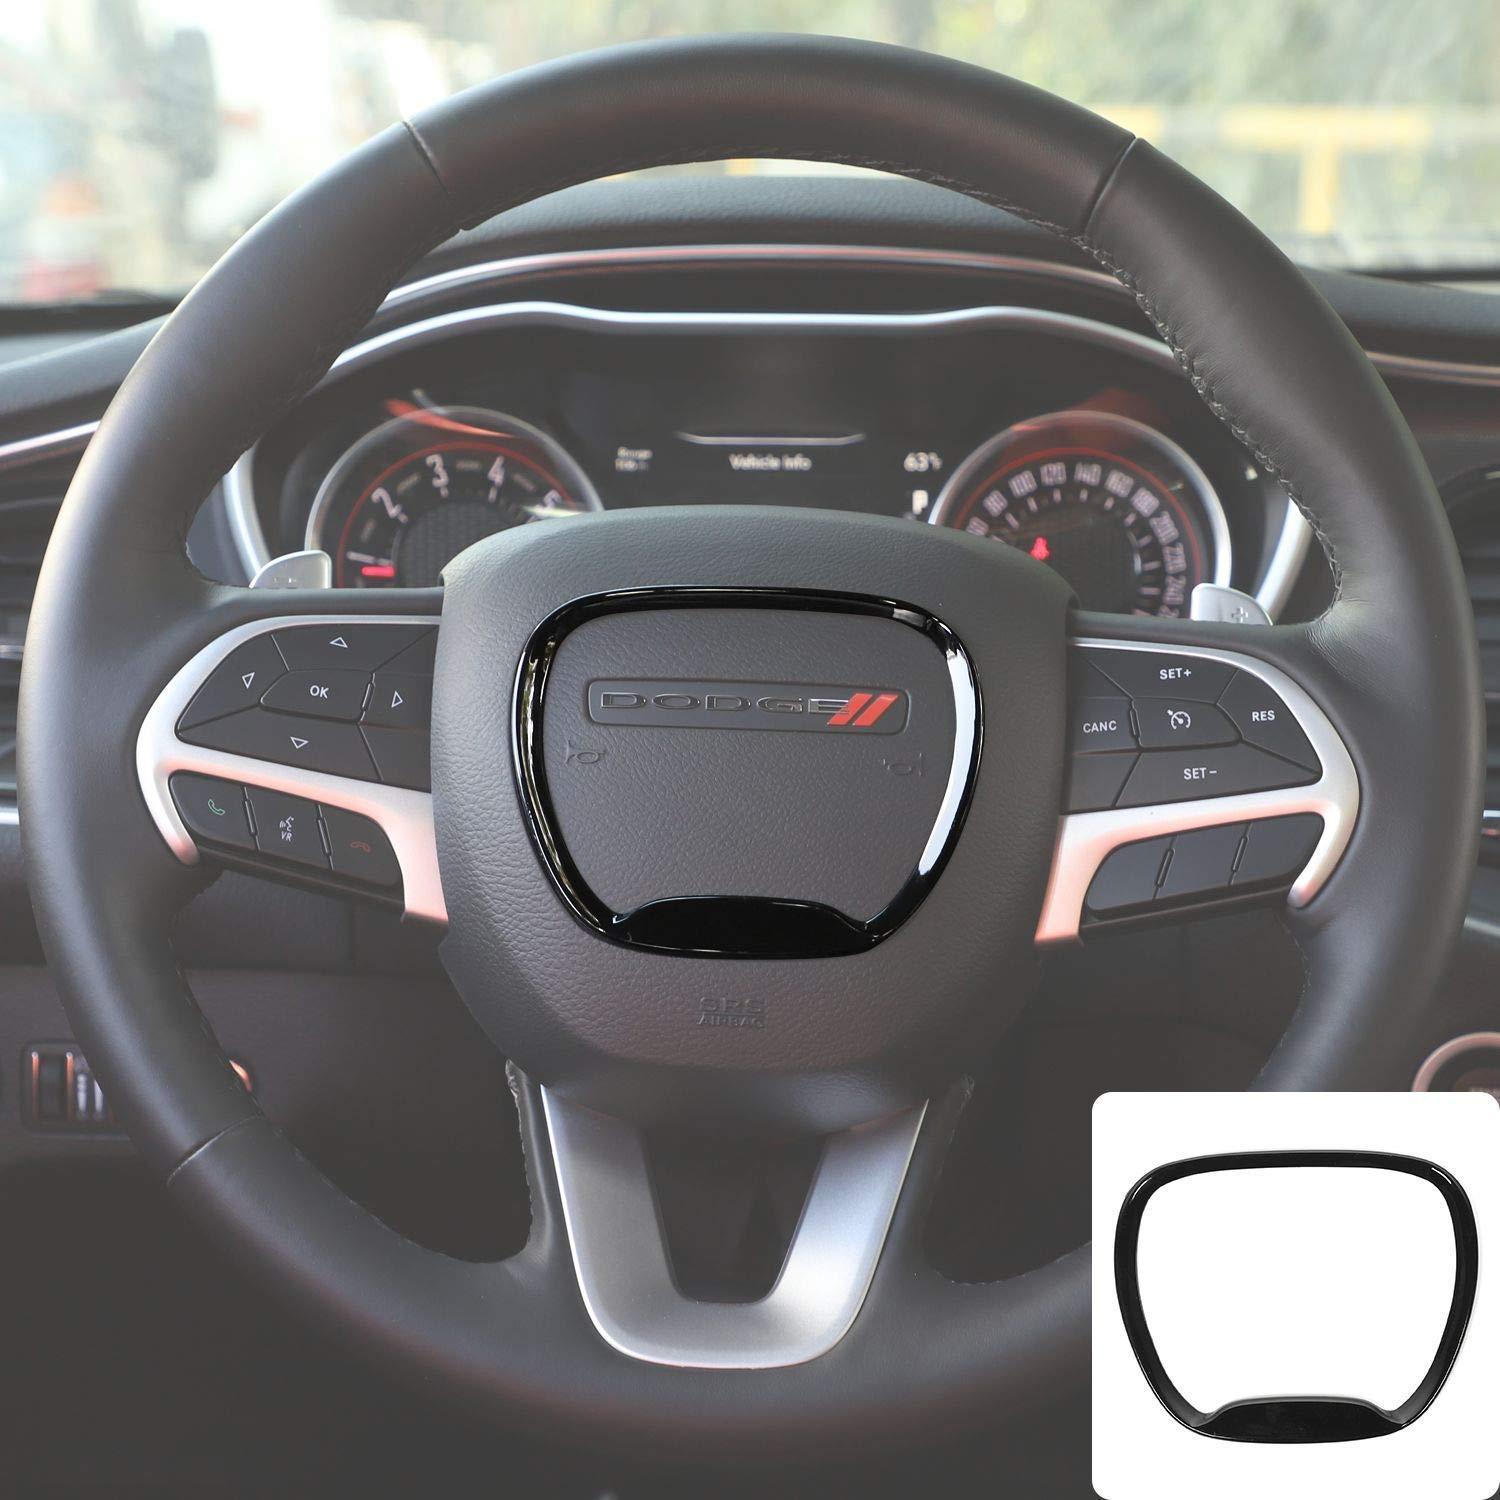 For Dodge Challenger Charger Durango 2015 2020 Interior Accessories Steering Wheel Trim Cover Emblem Kit Air Conditioner Switch Cd Button Knob Decal Trim Rings Red Steering Accessories Interior Accessories